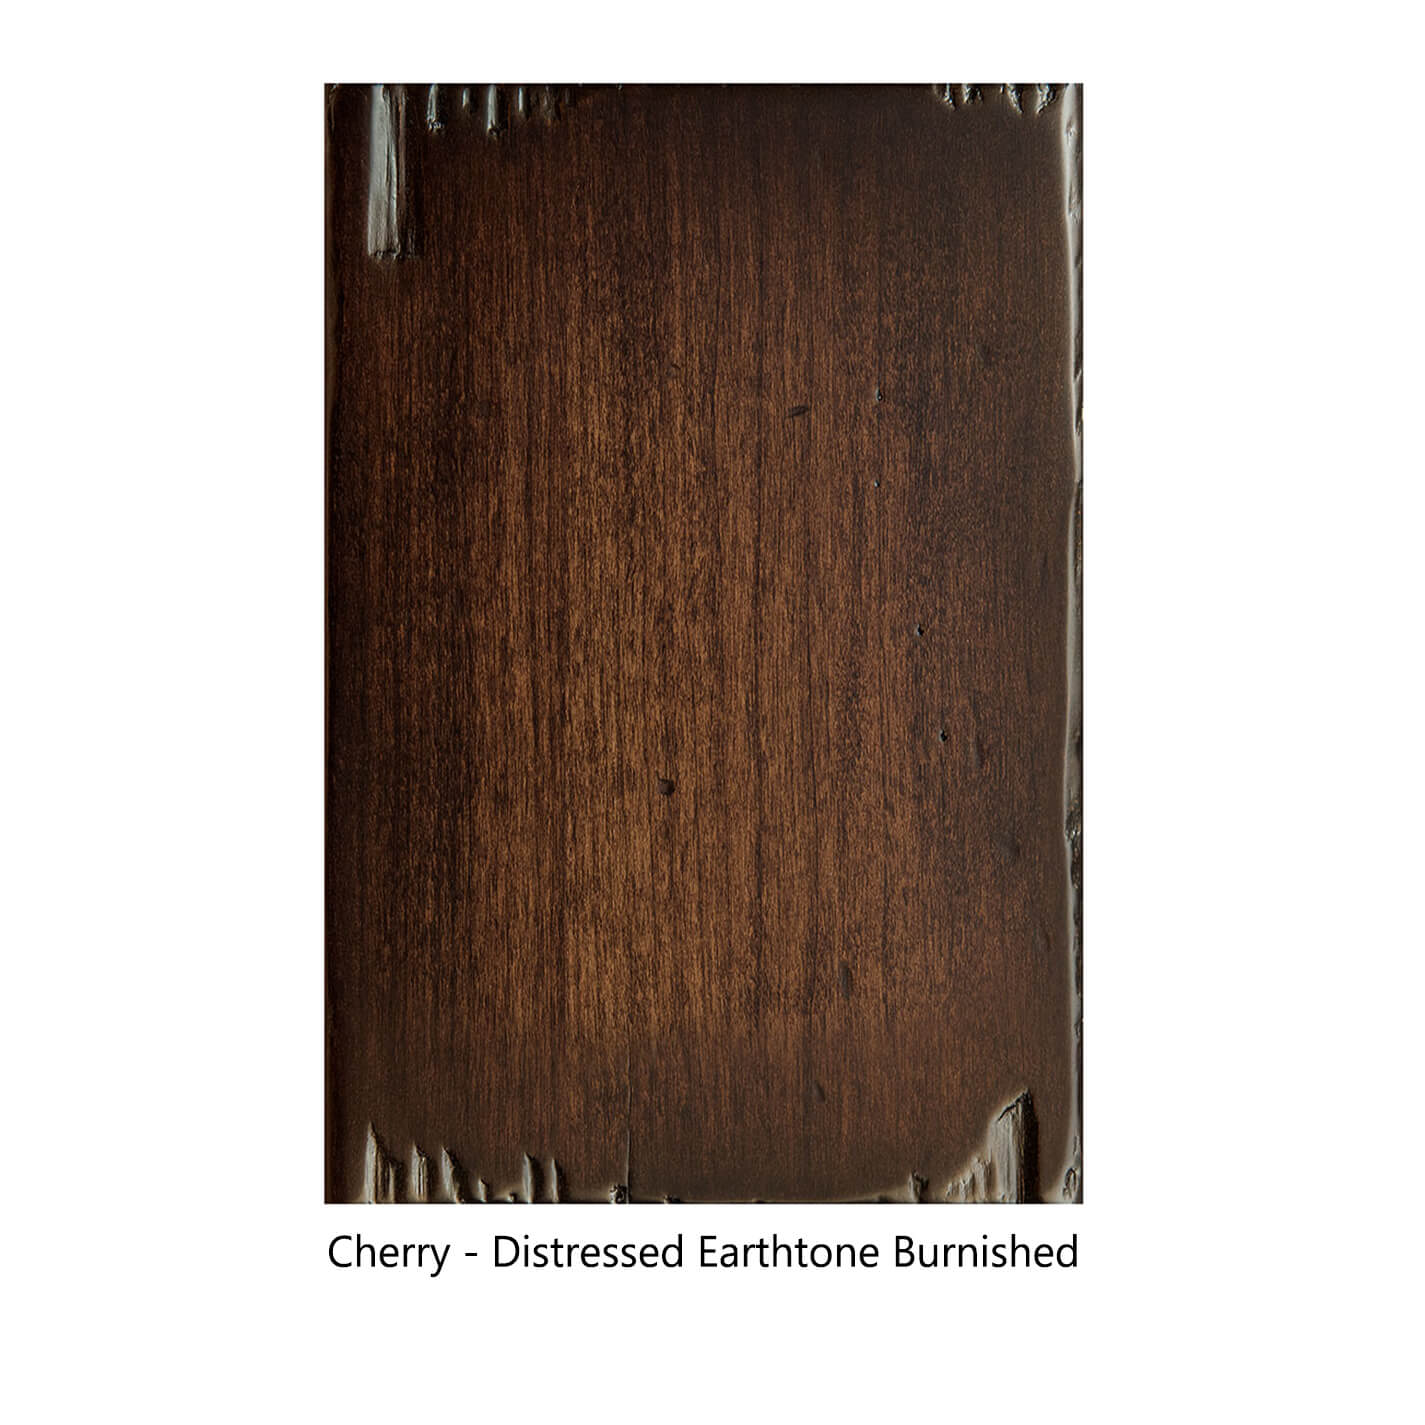 cherry-distressed-earthtone-burnished-category-3-10-sheen-copy.jpg